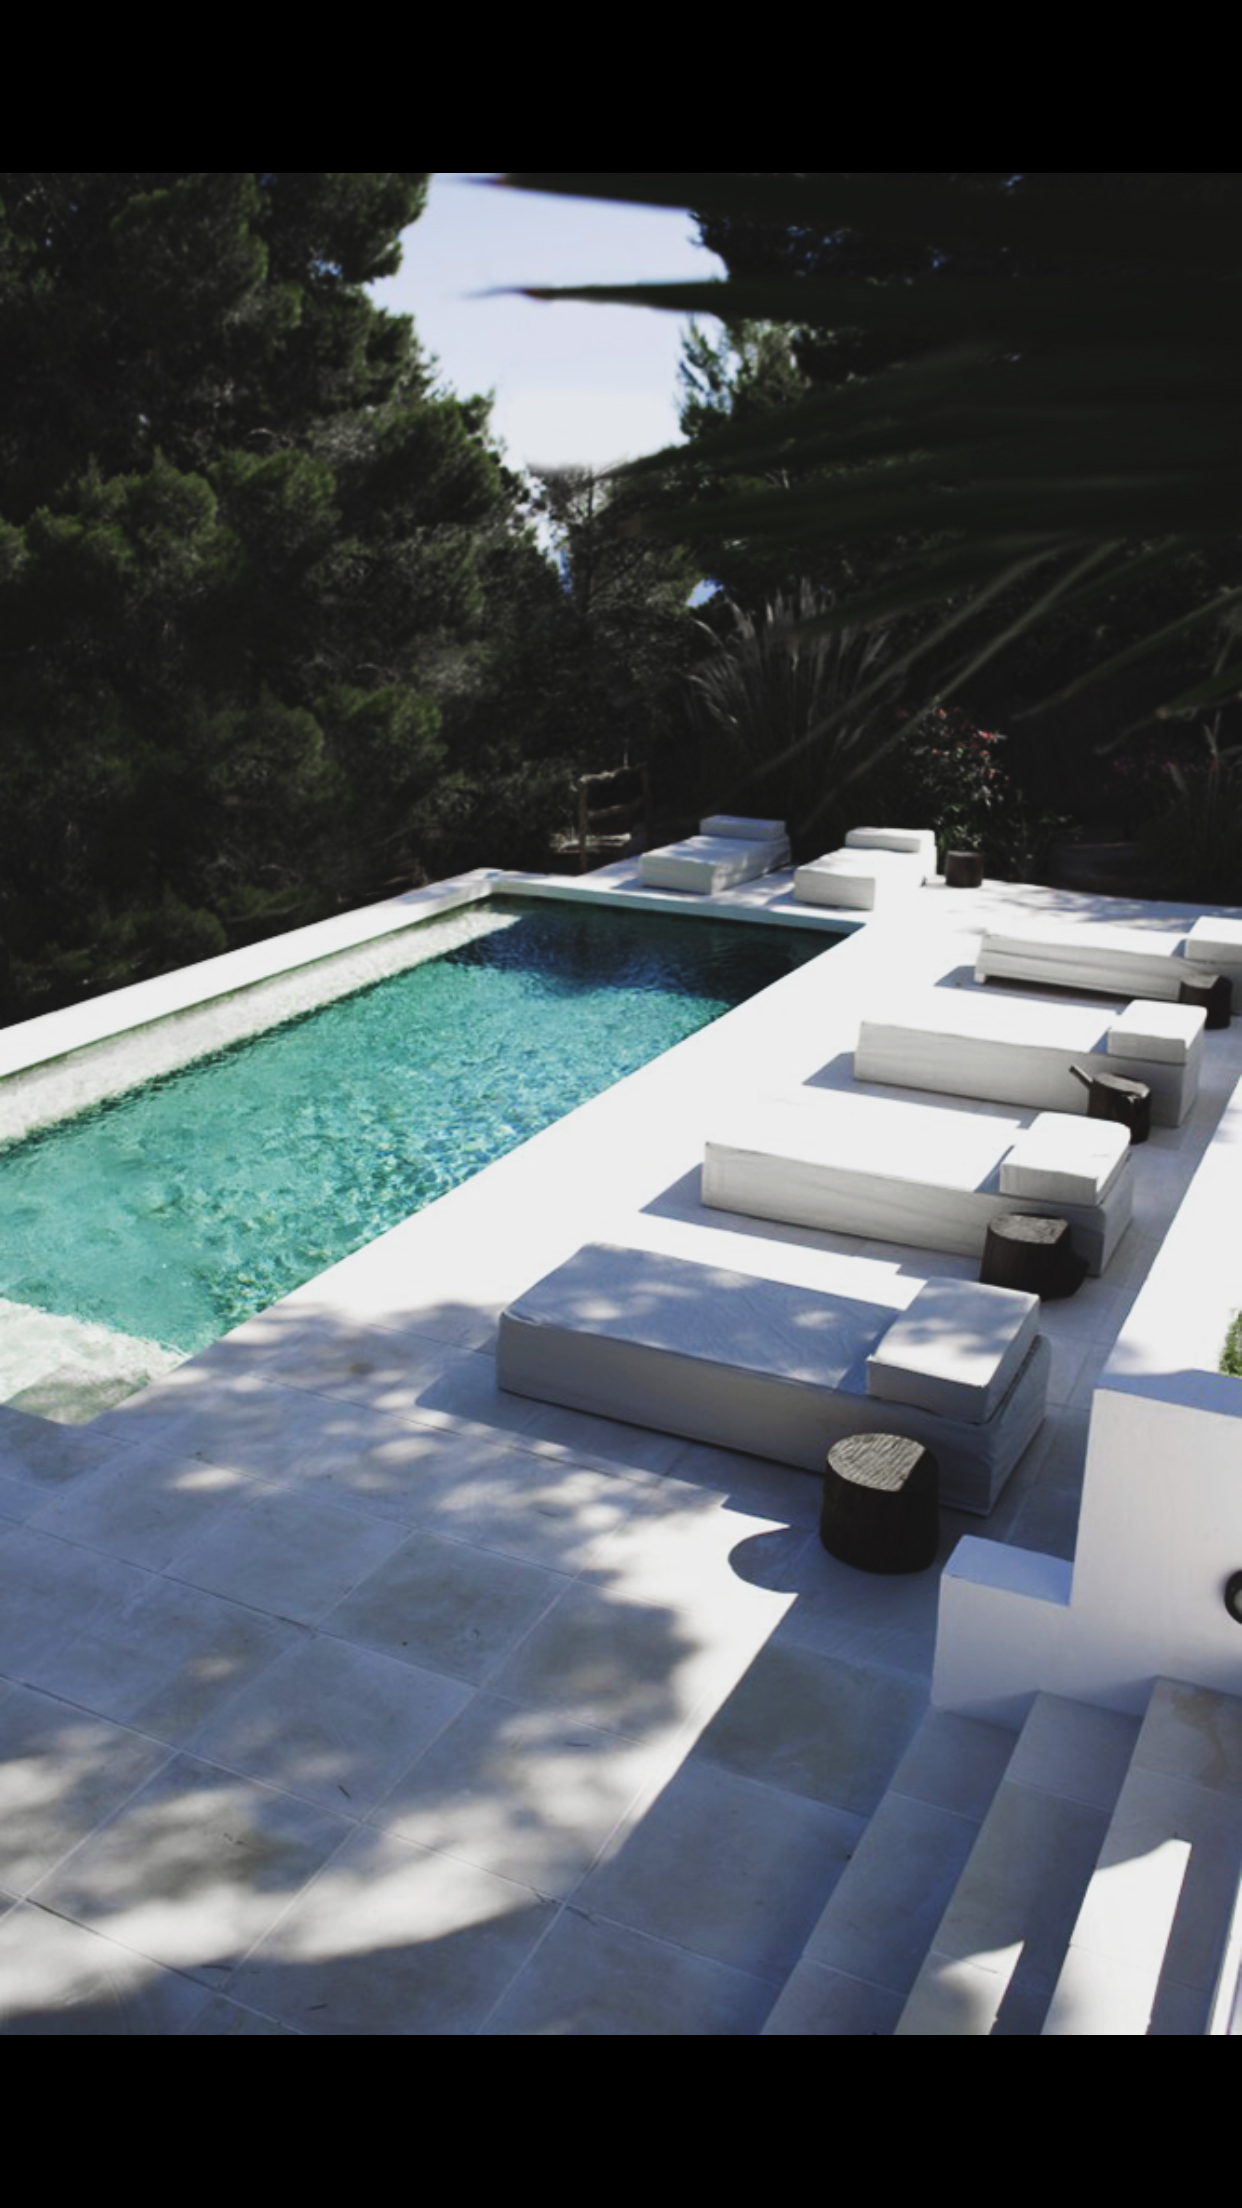 Pin by Richard Juenger on Pools in 2019 | Pool landscaping ...